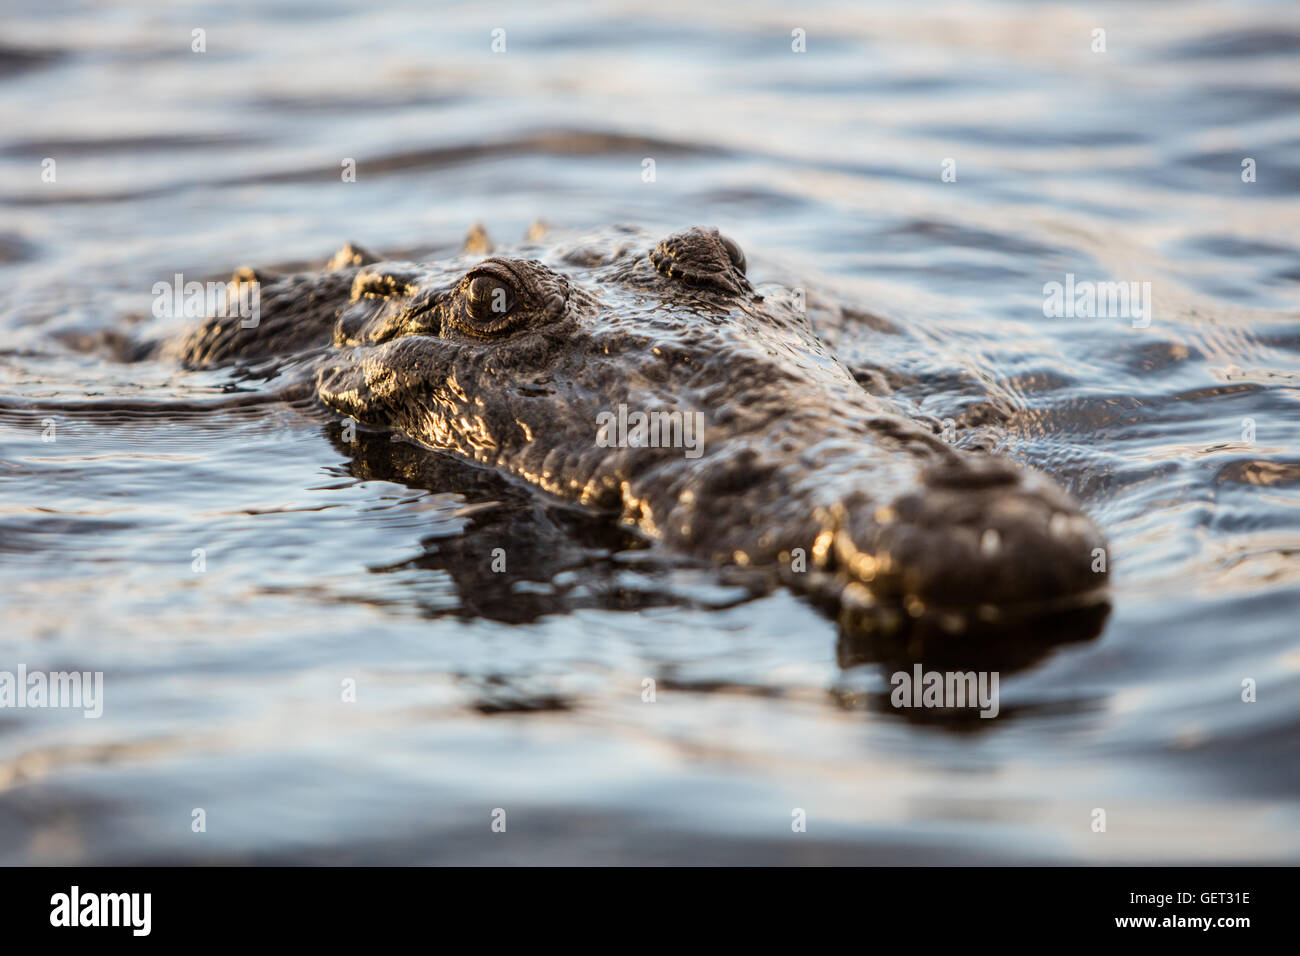 An American crocodile surfaces in a remote Caribbean lagoon. This large and dangerous reptile lives from Florida - Stock Image